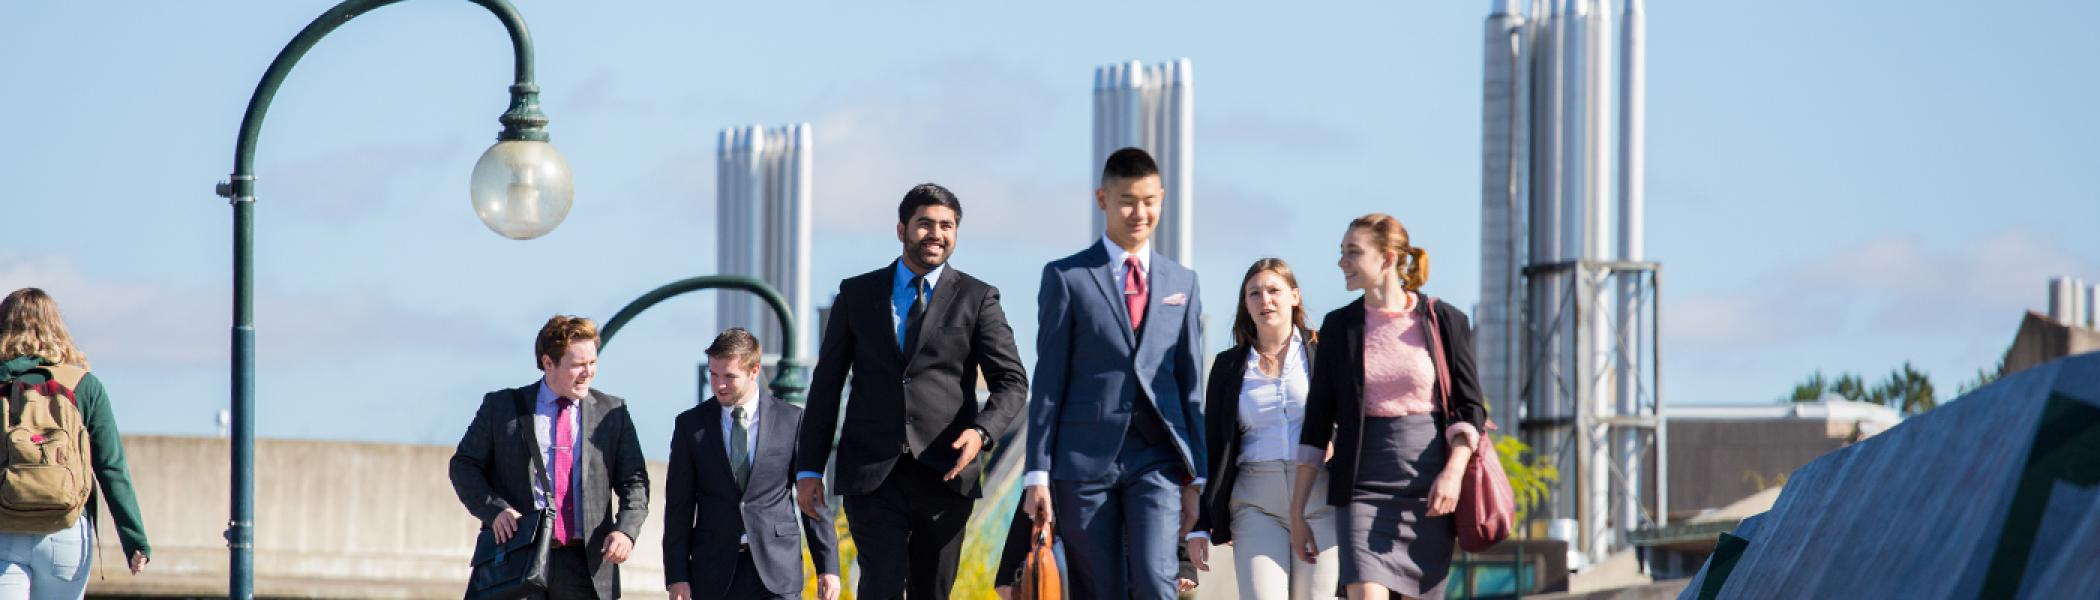 A group of students in business suits walking across the Faryon bridge in the afternoon fall sun